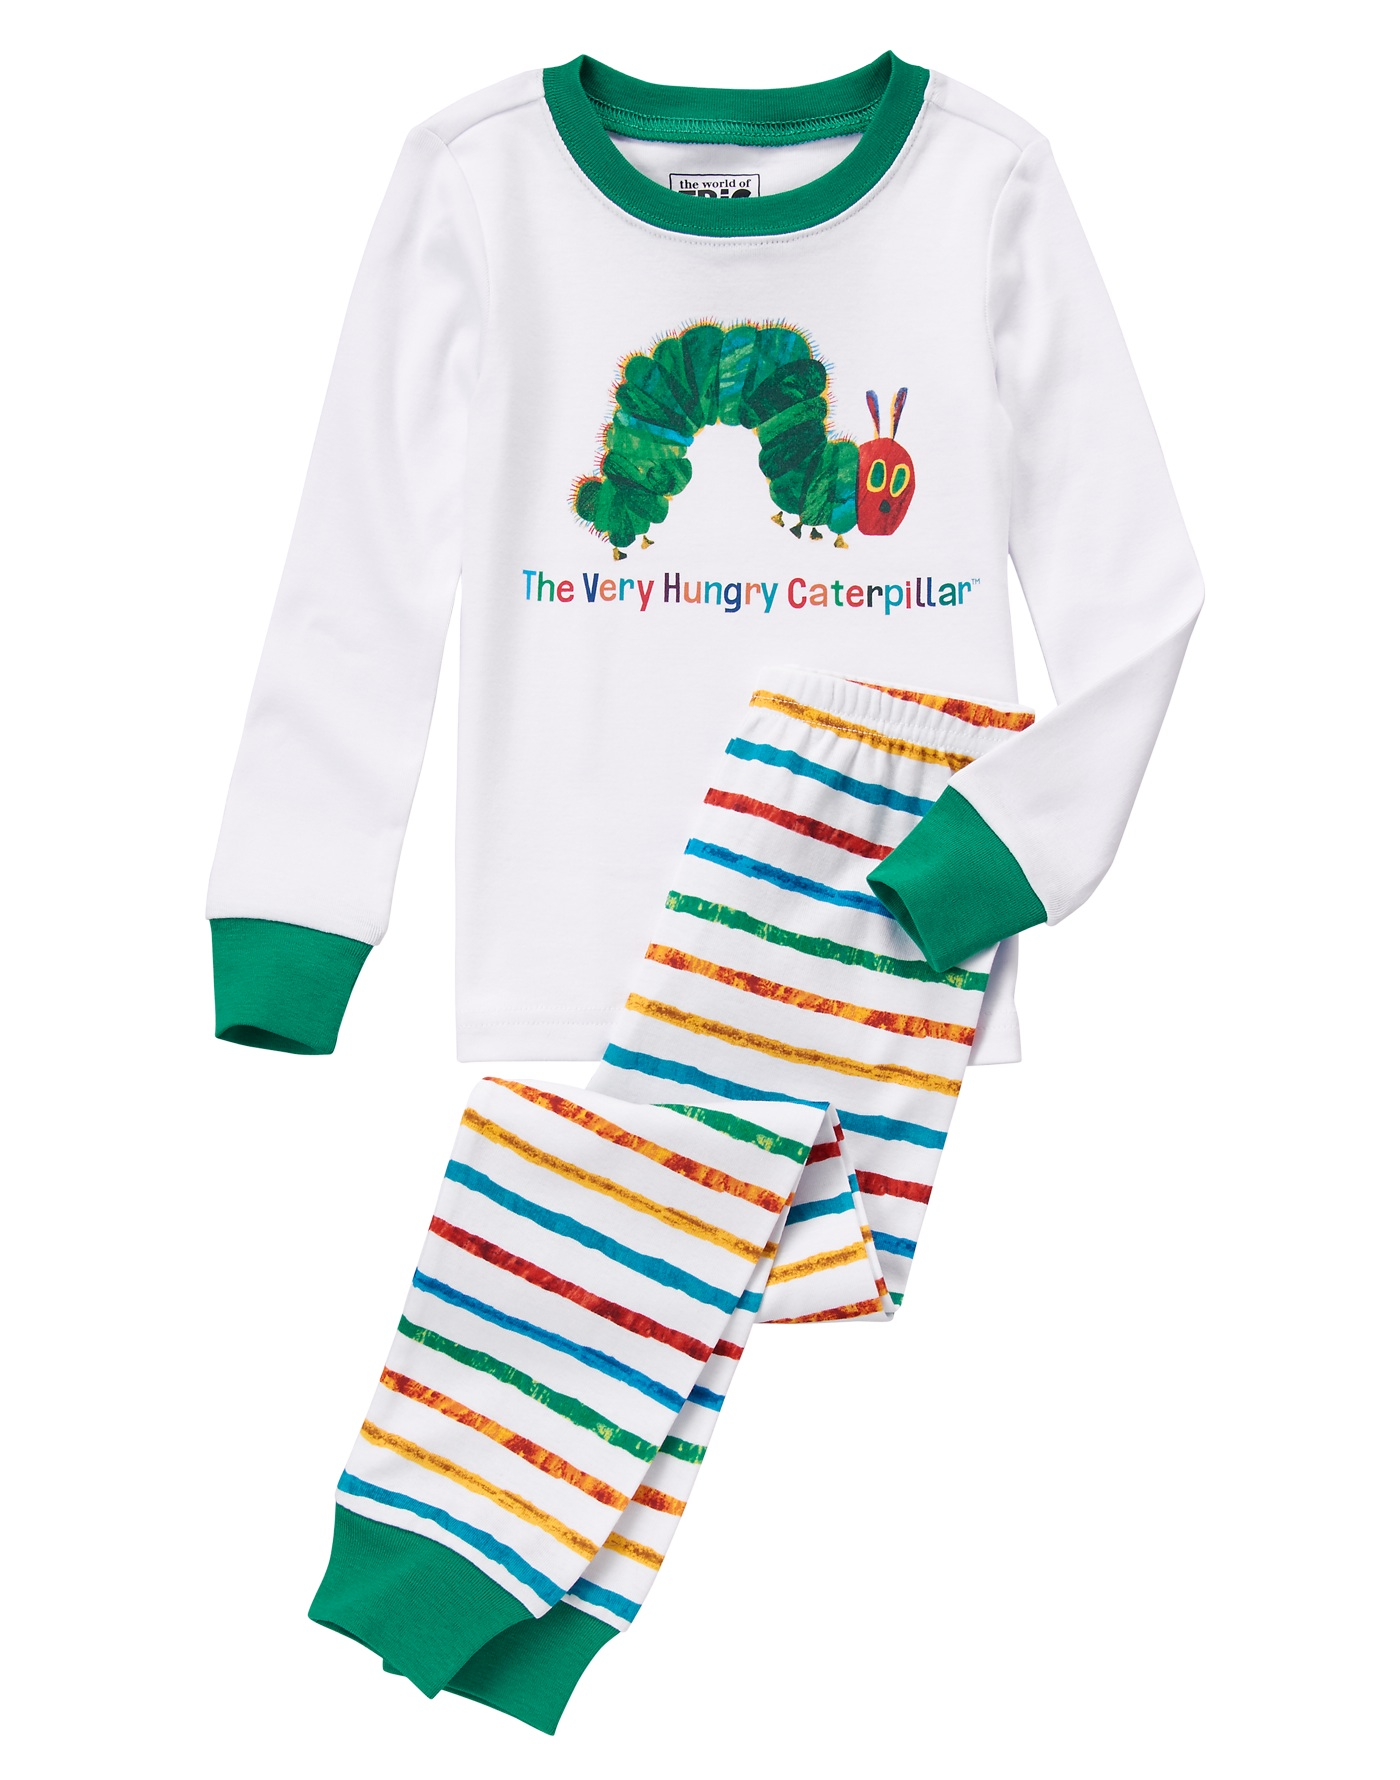 The Very Hungry Caterpillar jammies